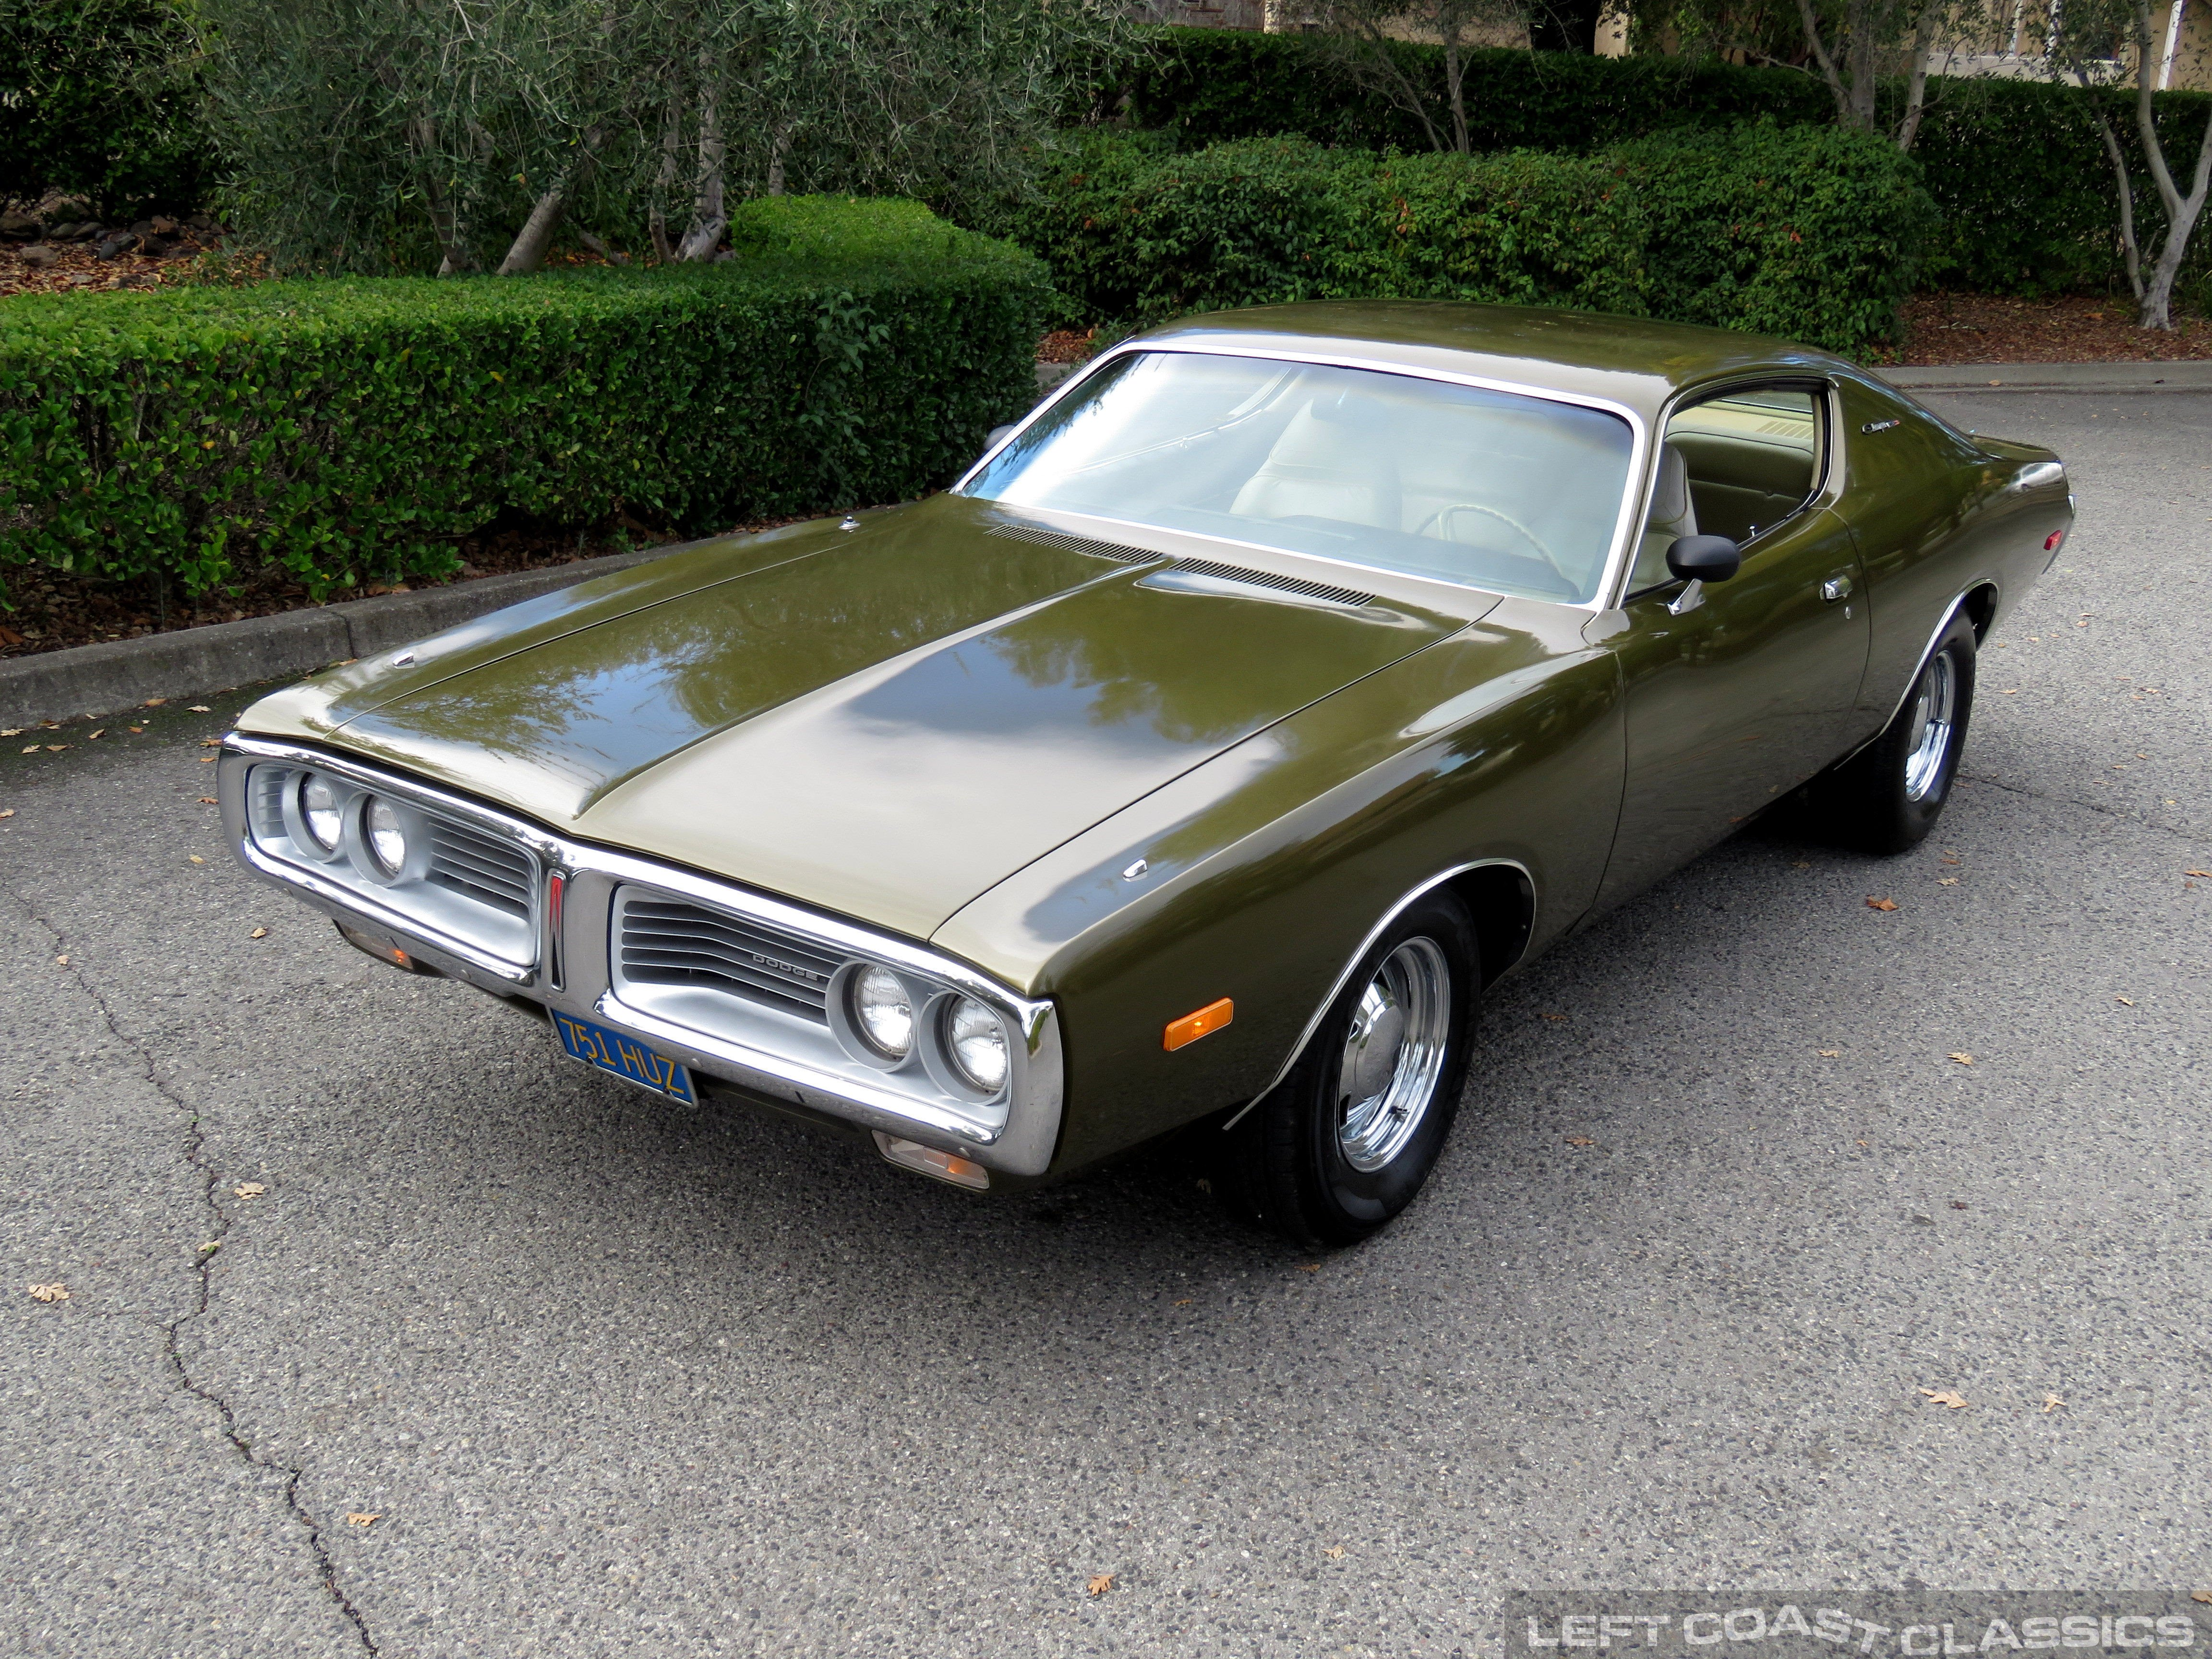 1972 Dodge Charger Classics For Sale Classics On Autotrader